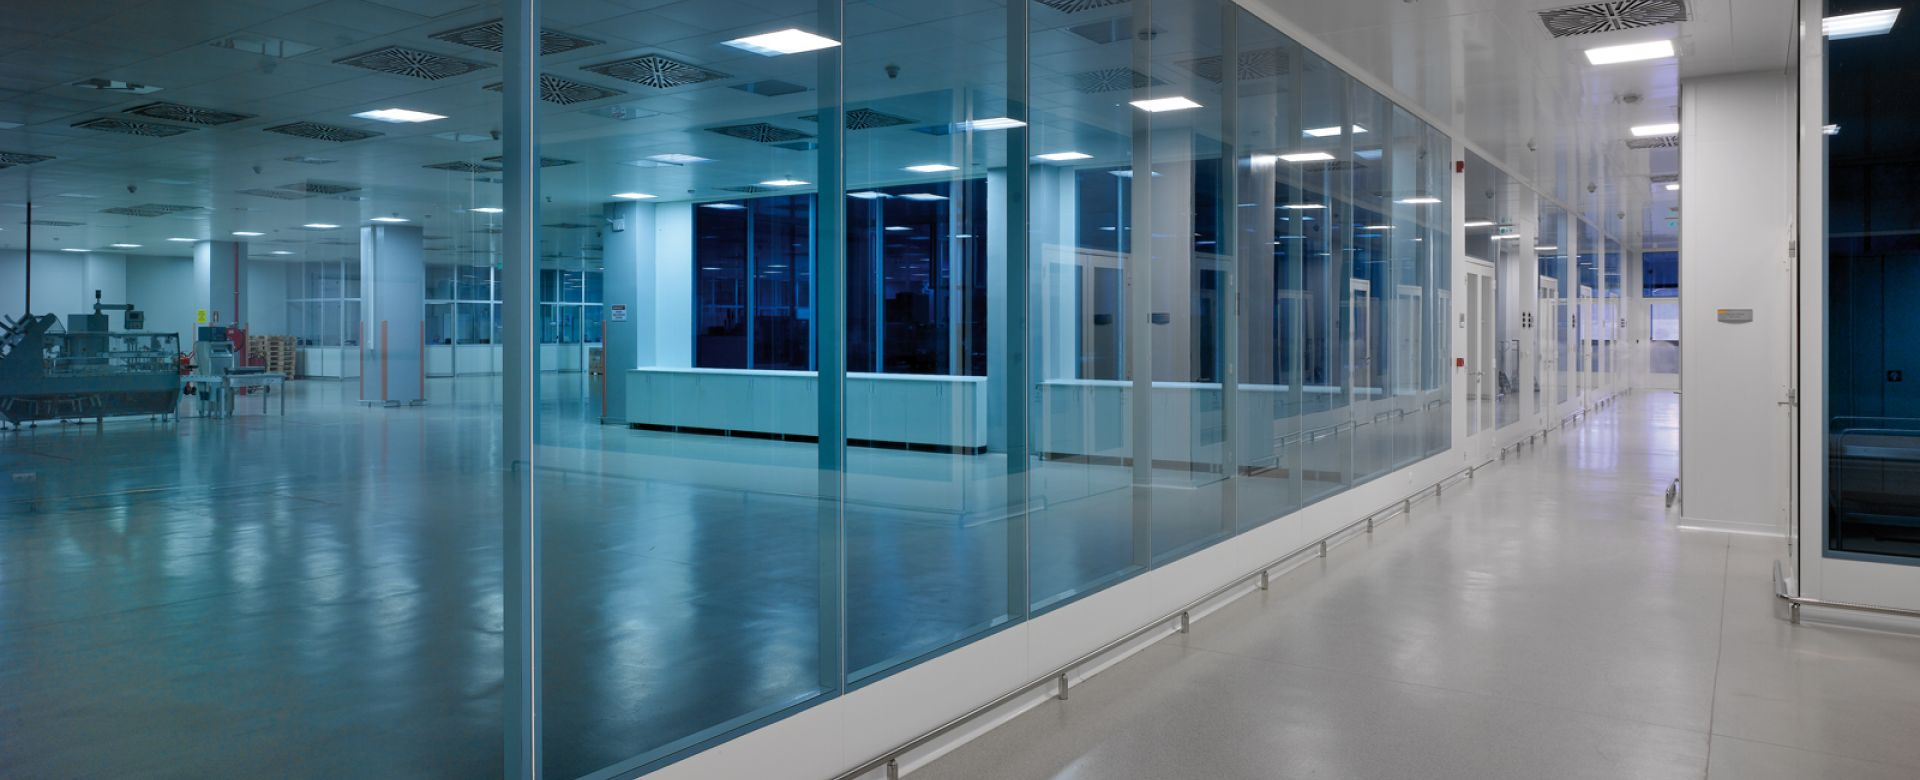 Clestra Cleanroom : Cloison pour salle propre